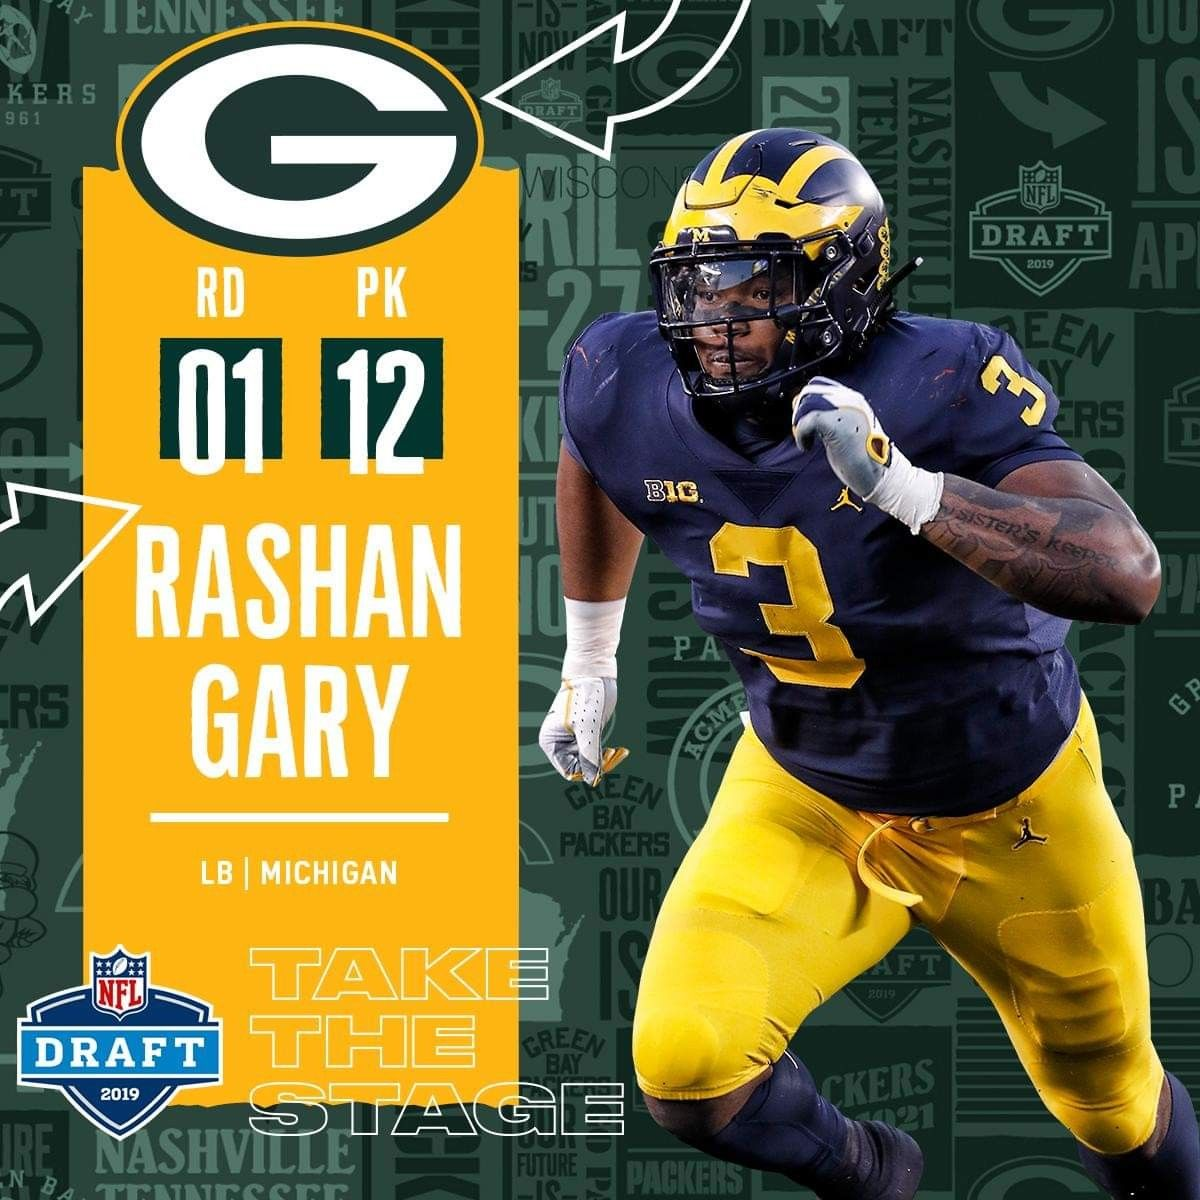 Pin By Scott On Football Football Funnies Nfl Nfl Draft Nfl Packers